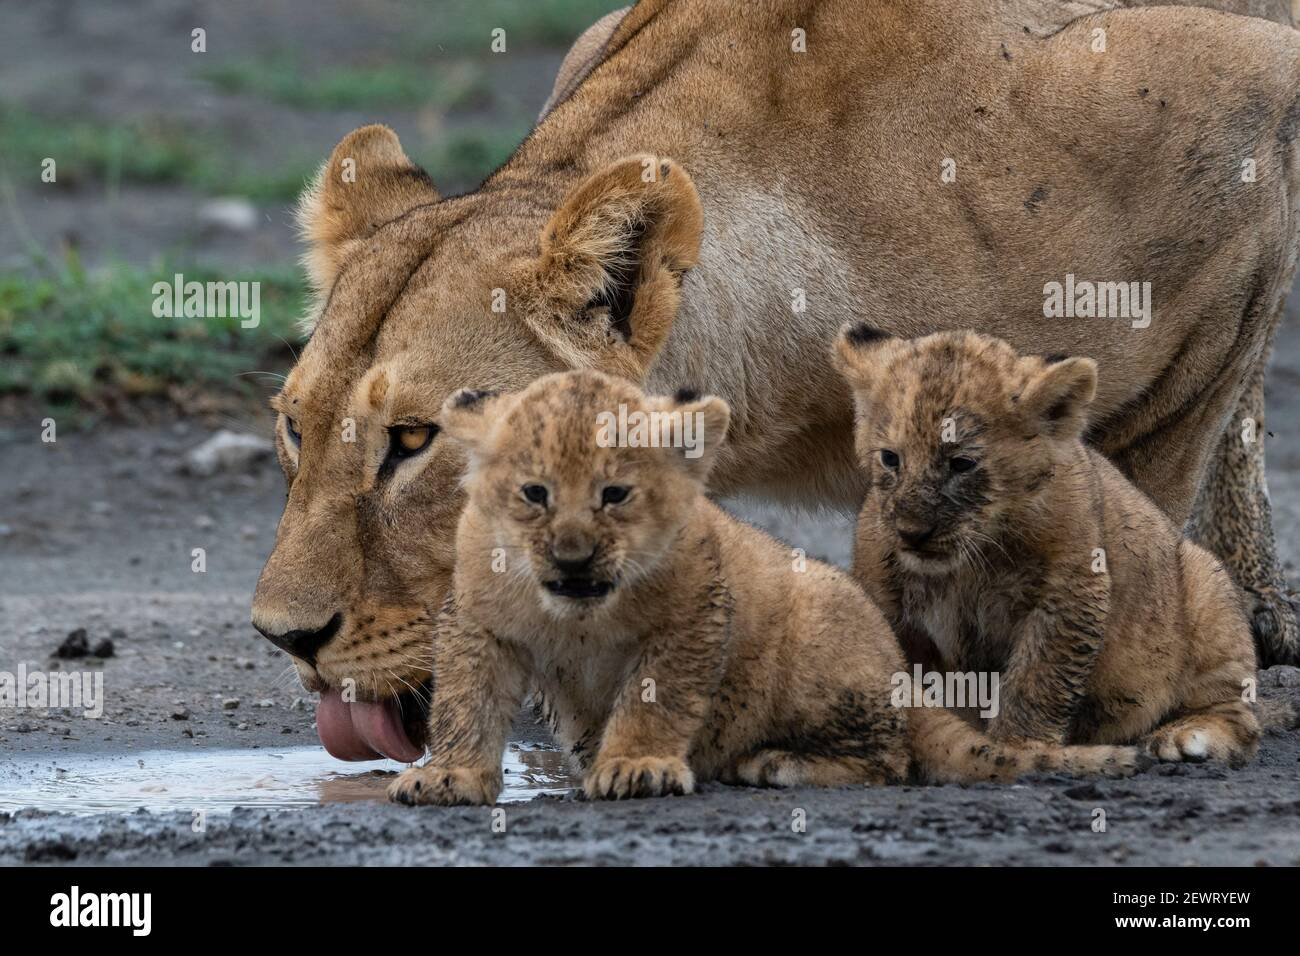 A lioness (Panthera leo) with its four week old cubs, Ndutu, Ngorongoro Conservation Area, Serengeti, Tanzania, East Africa, Africa Stock Photo